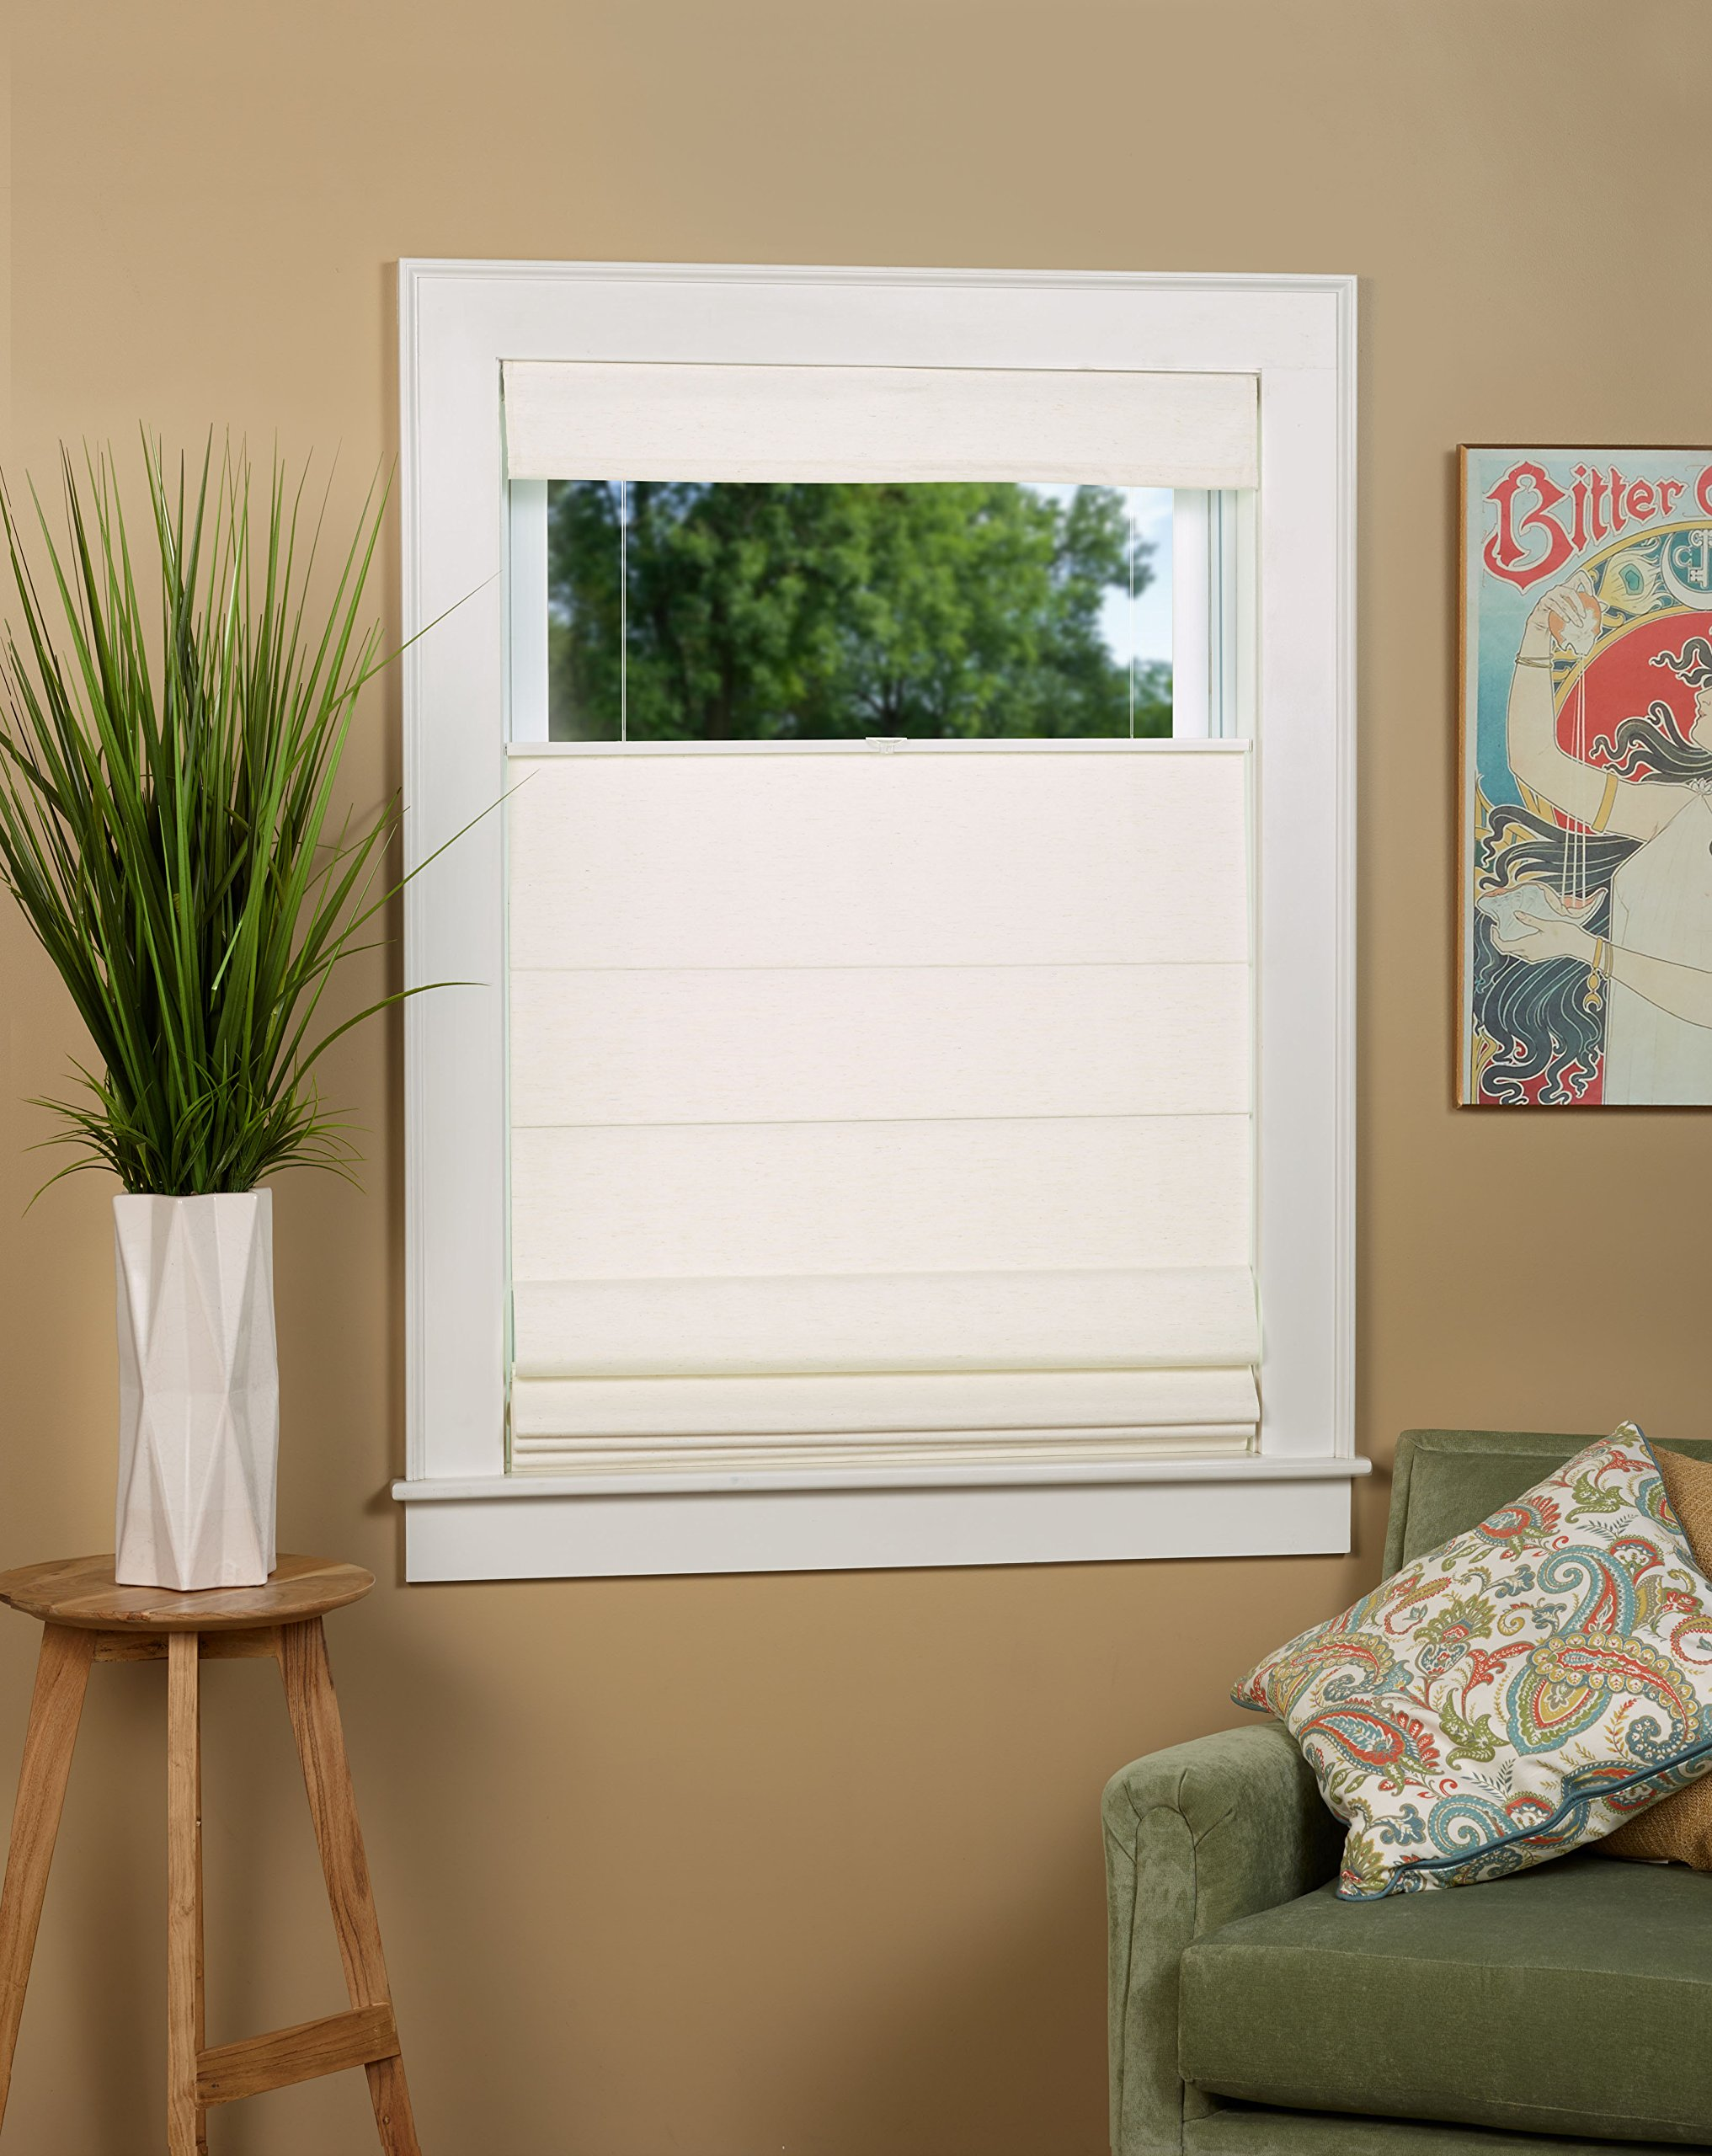 North Country Window Wear Cordless Thermal Backed Top Down Bottom Up Roman Shade 34'' W x 64'' L - Color: Alabaster by North Country Window Wear